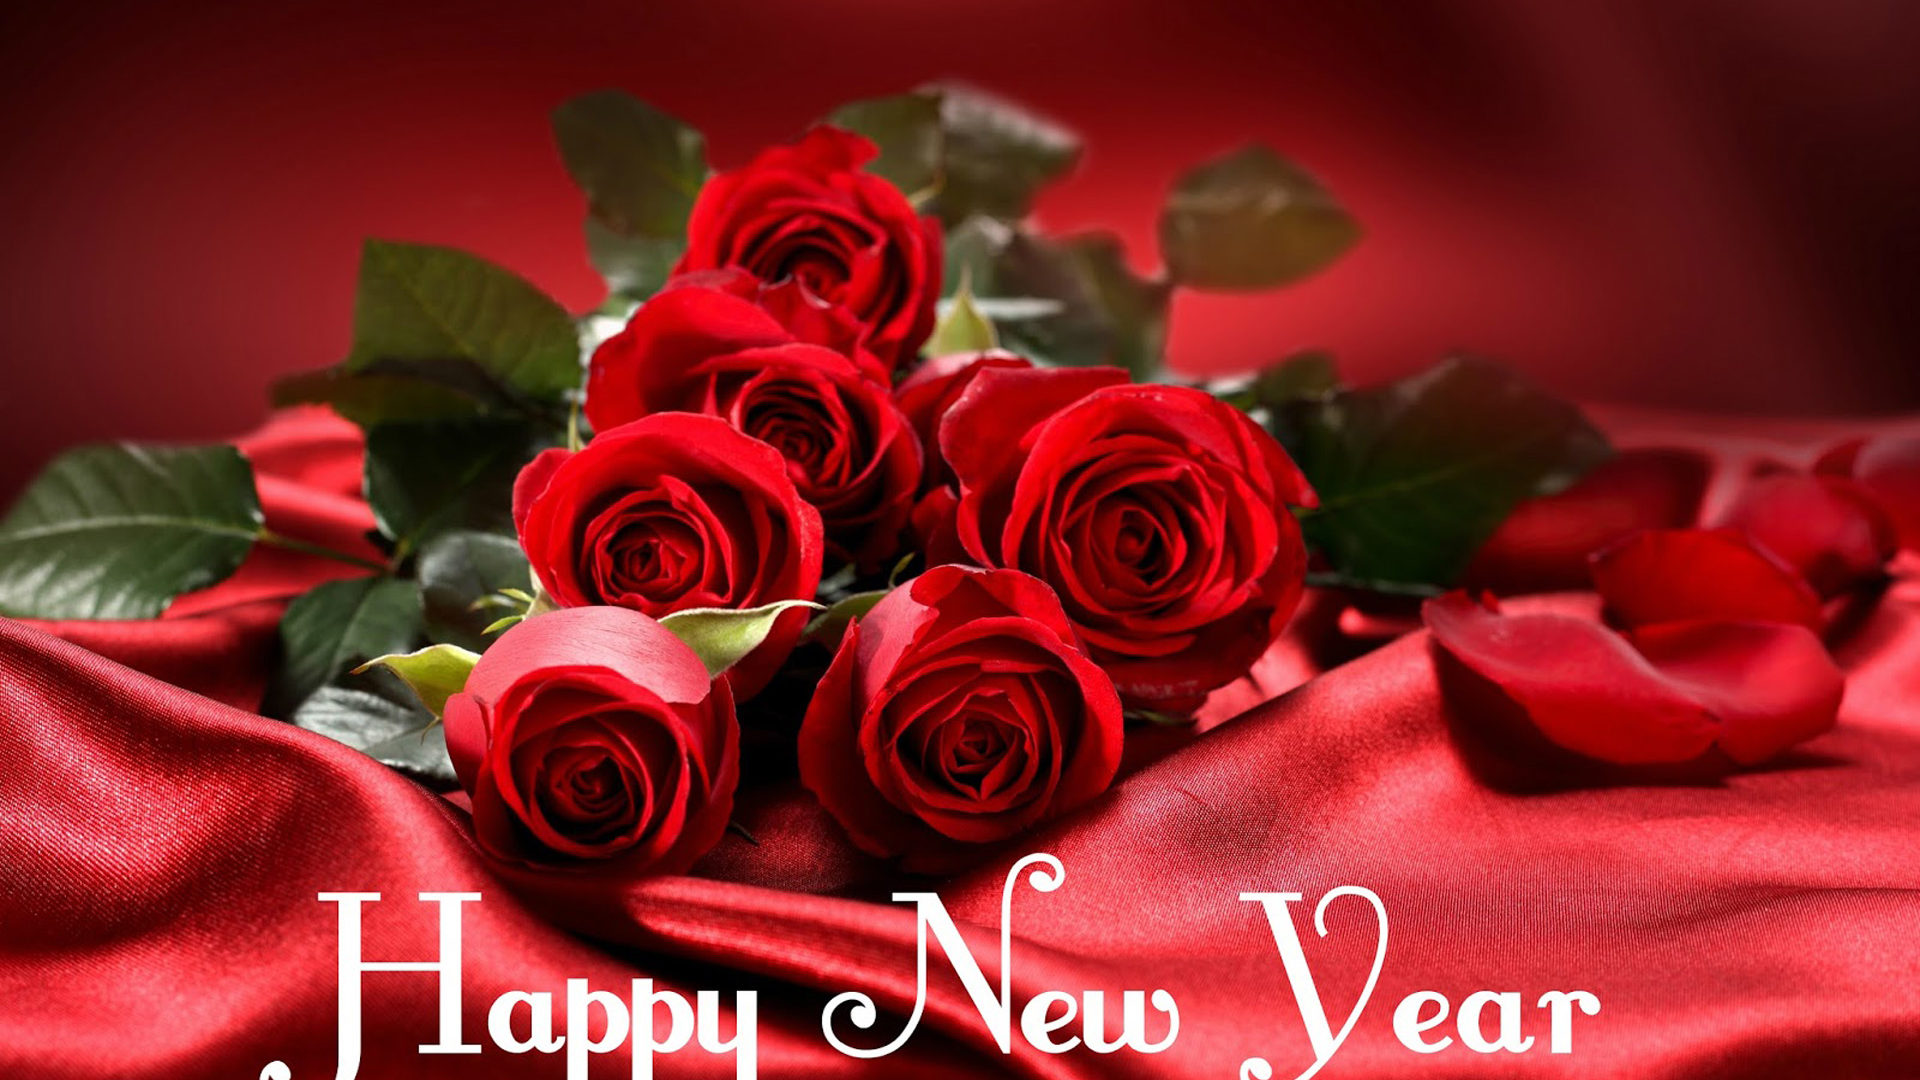 Happy New Year Red Roses Flower Images 2020 Greeting Card 1920x1080